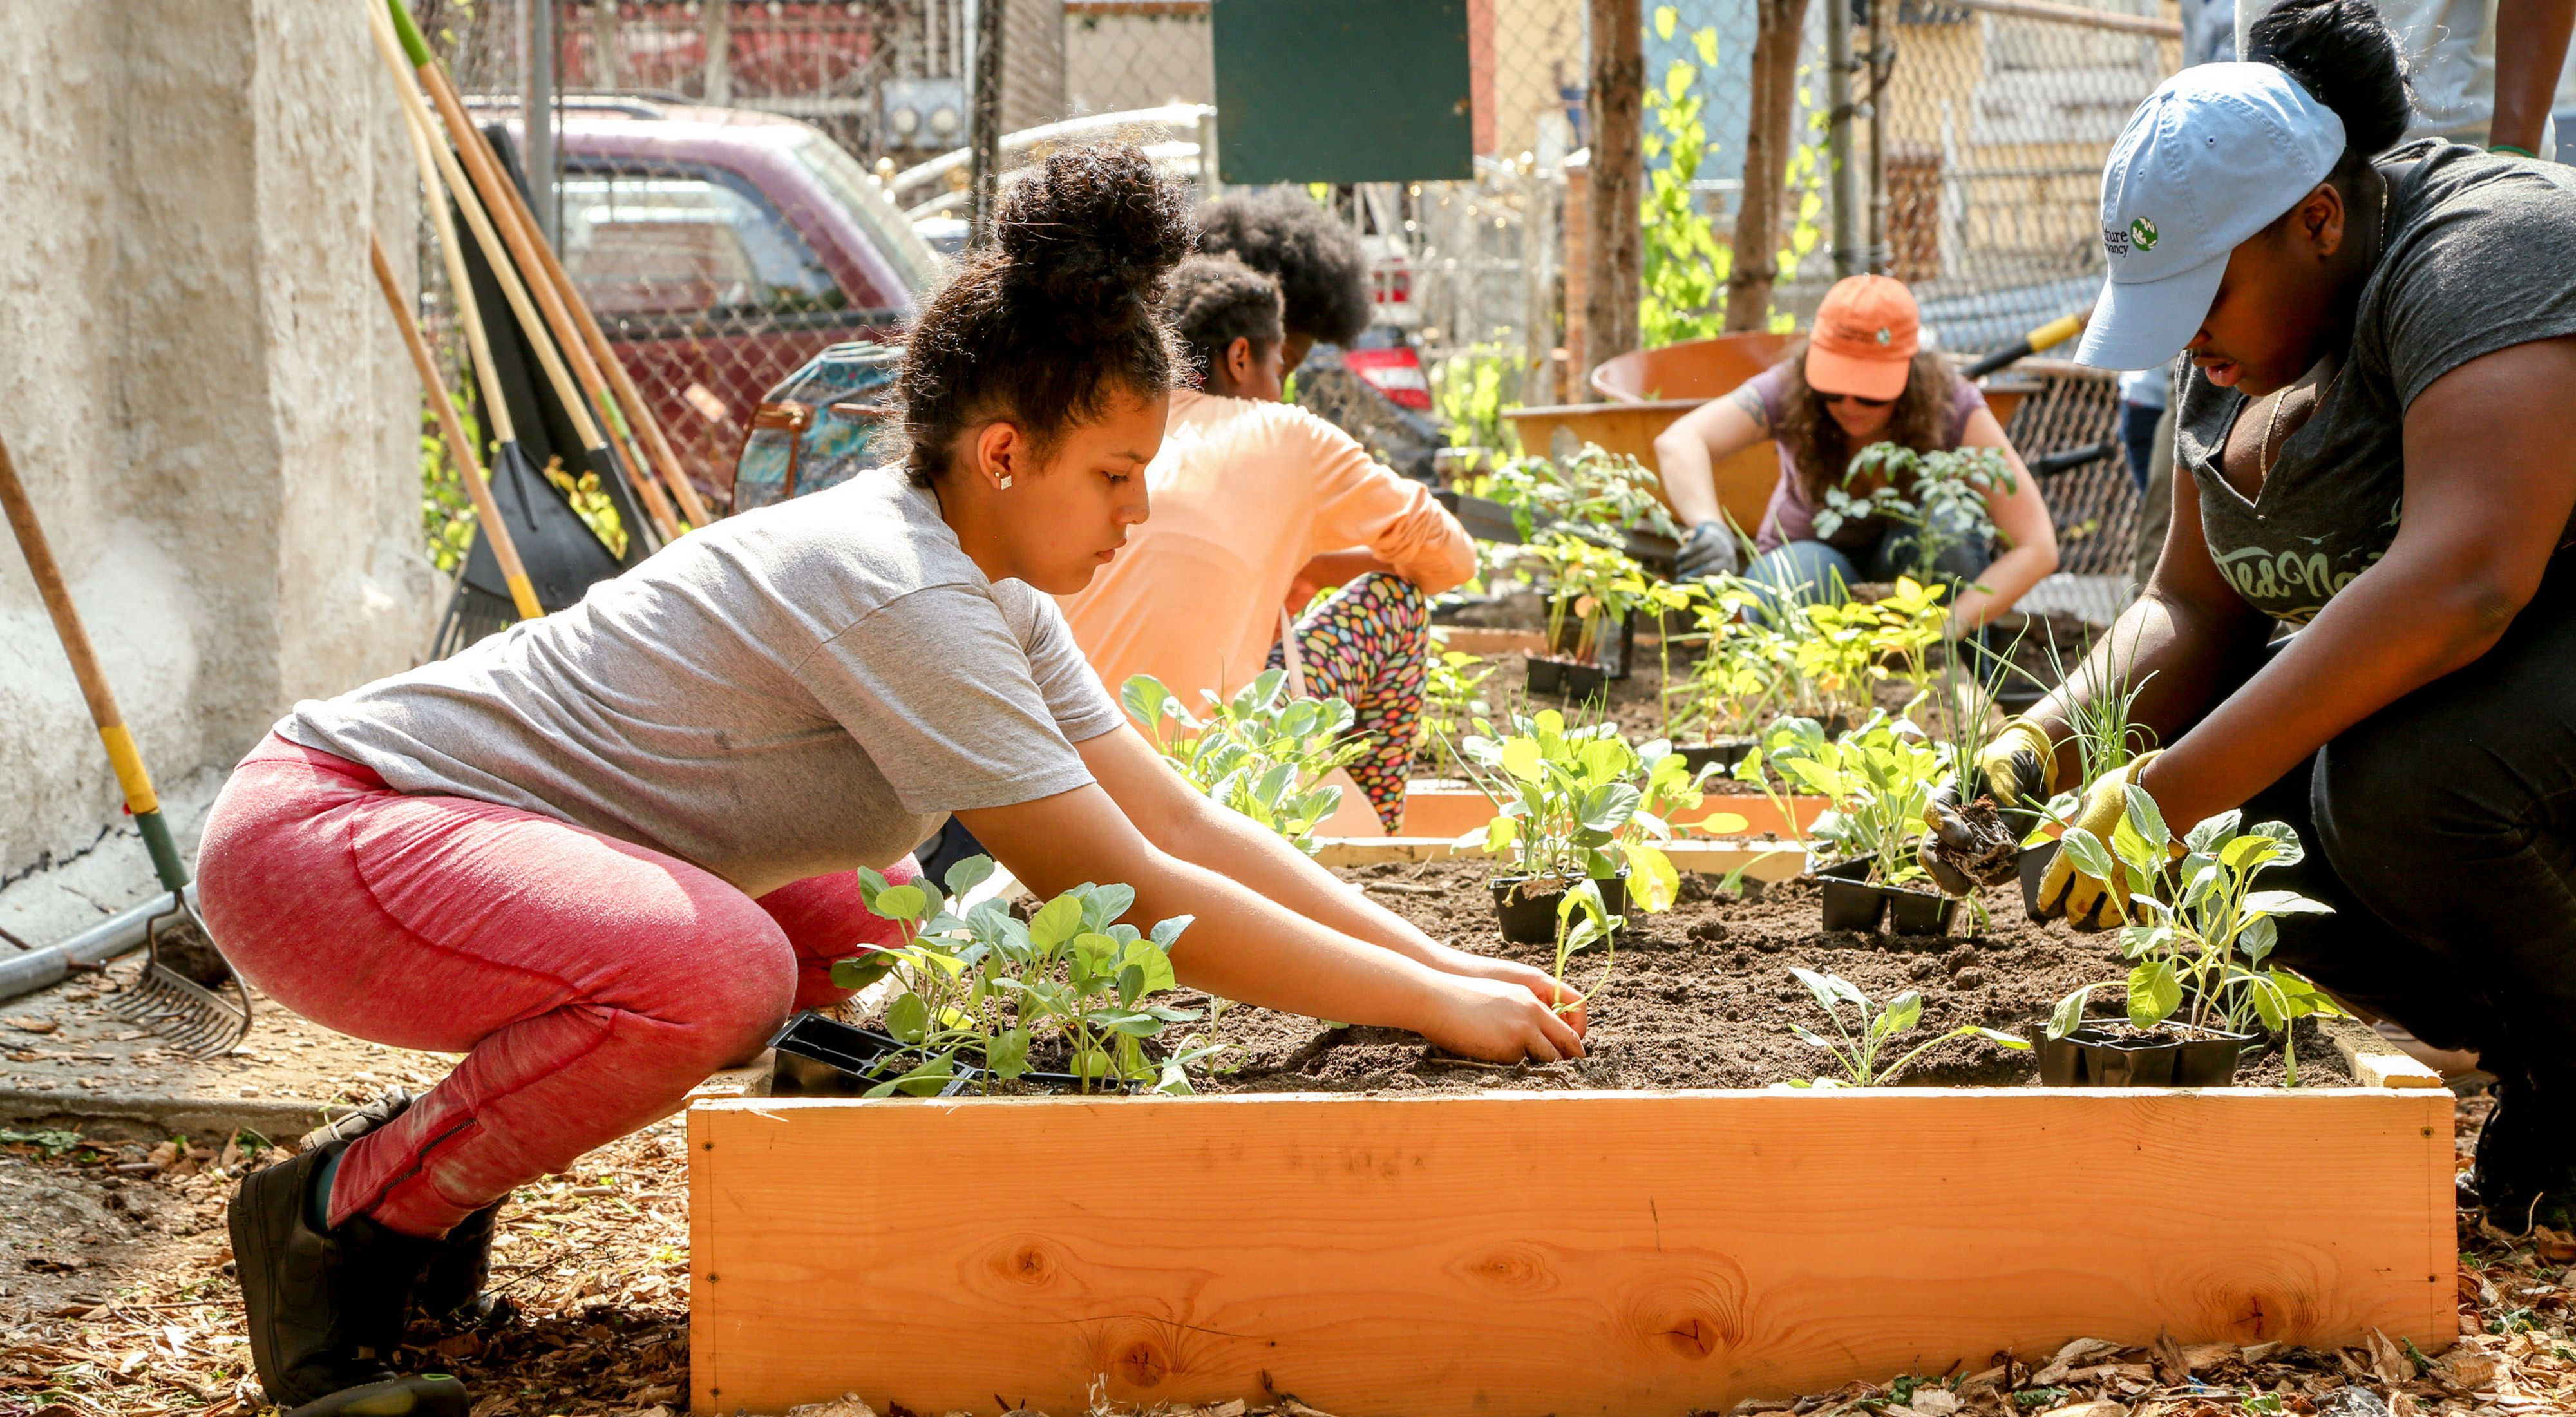 The Nature Conservancy installs a community garden in Brooklyn, New York.